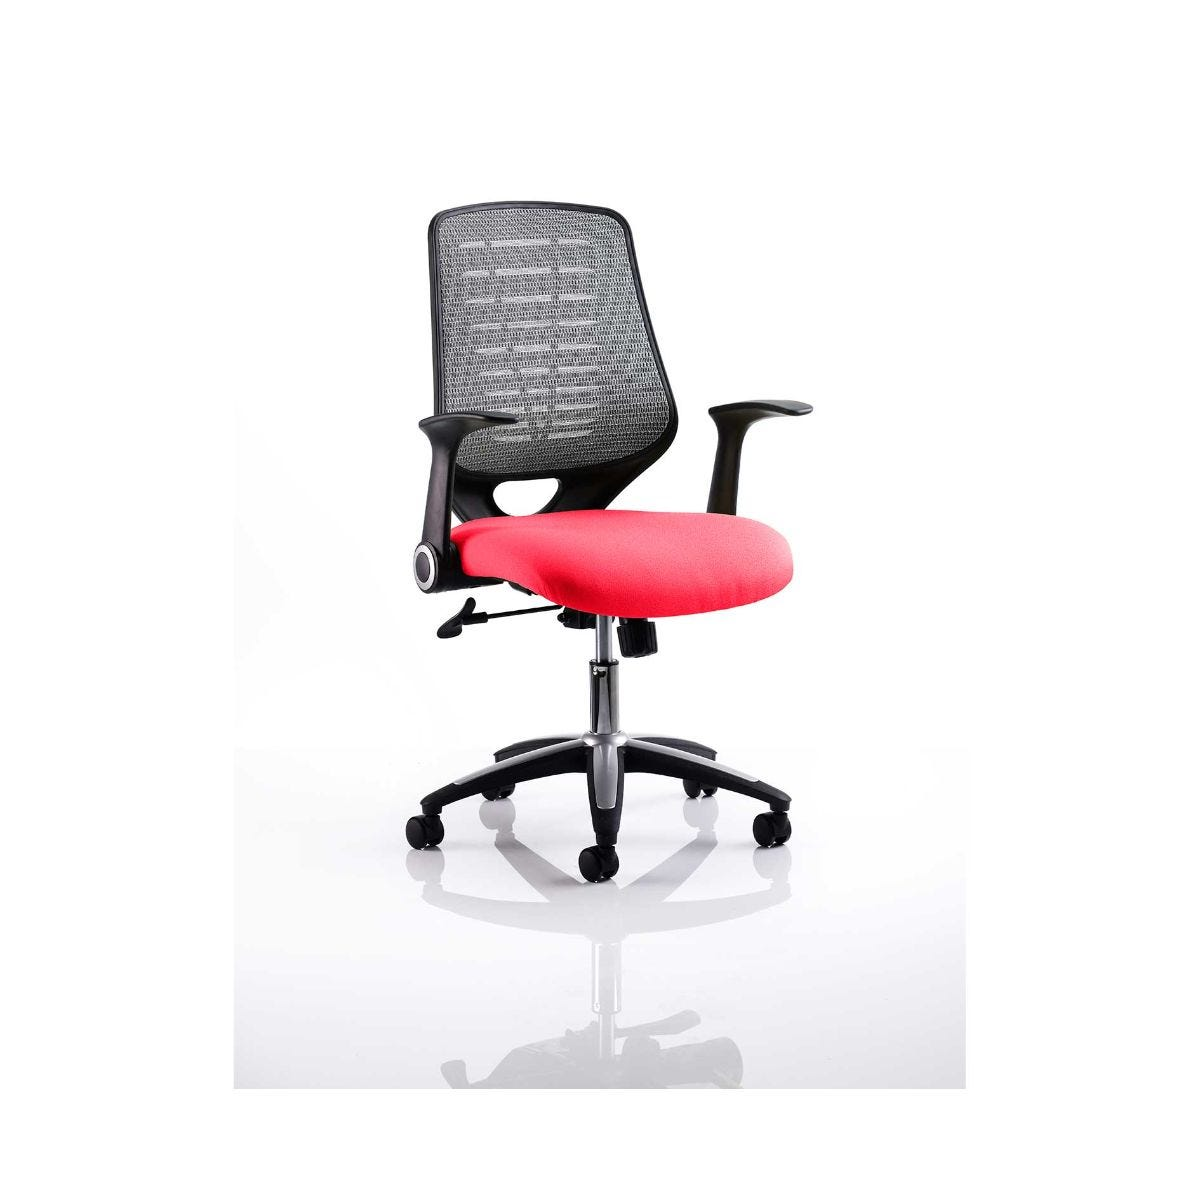 Relay Mesh Back Office Chair Silver, Bergamot